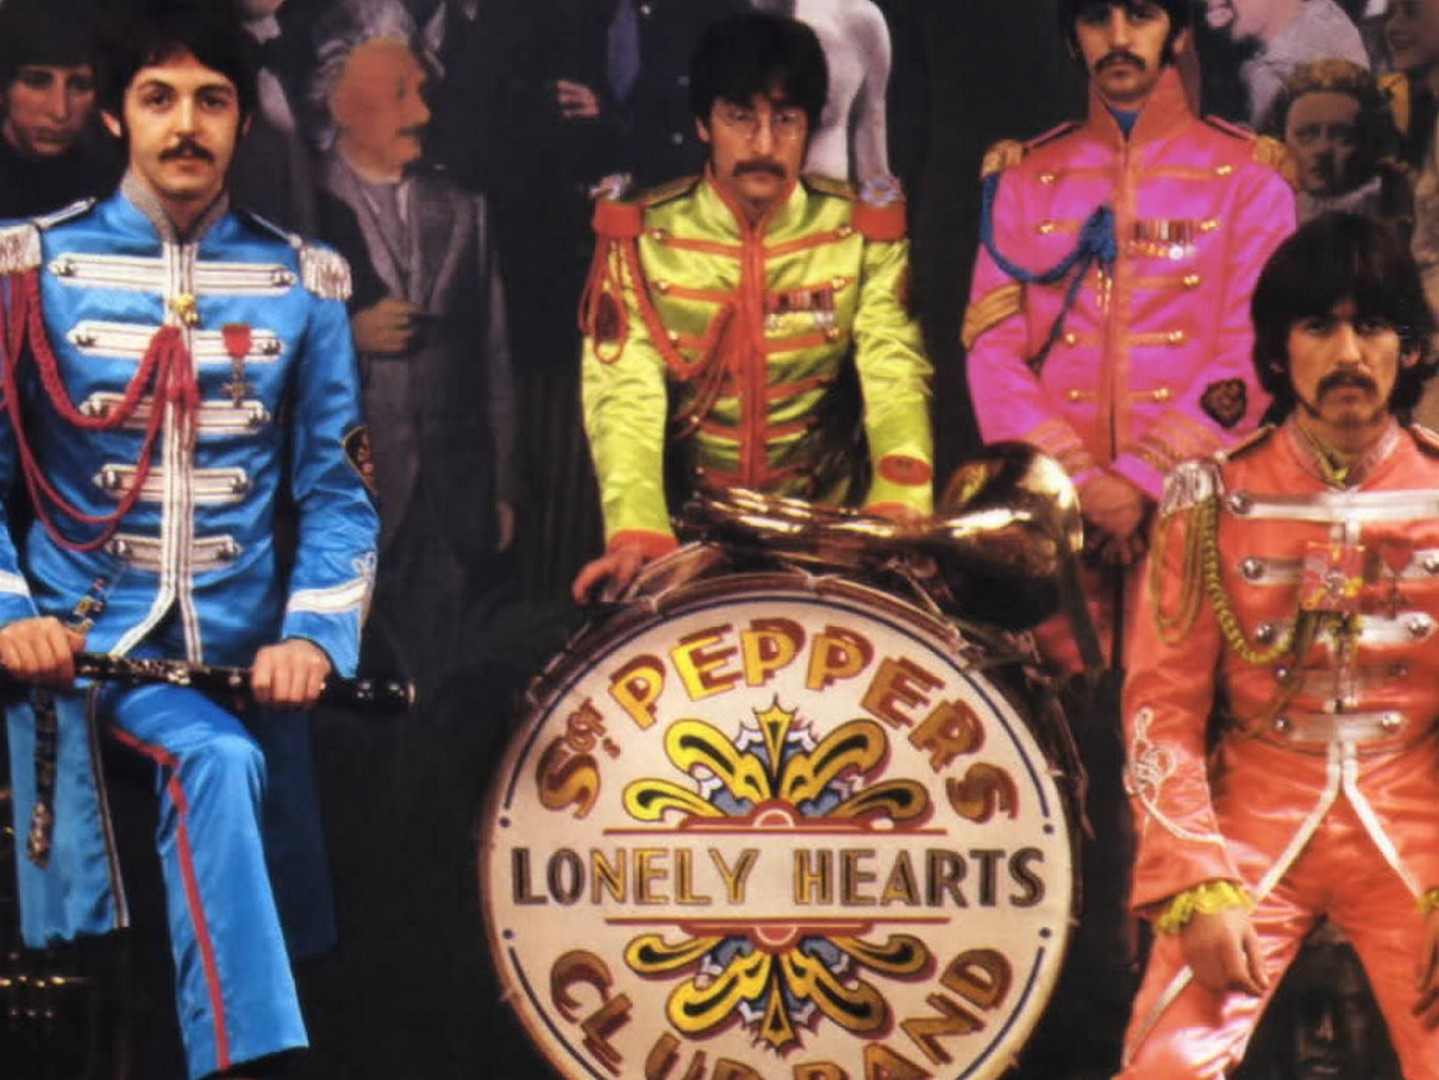 Beatles Sgt Peppeps Loney Hearts Club Band